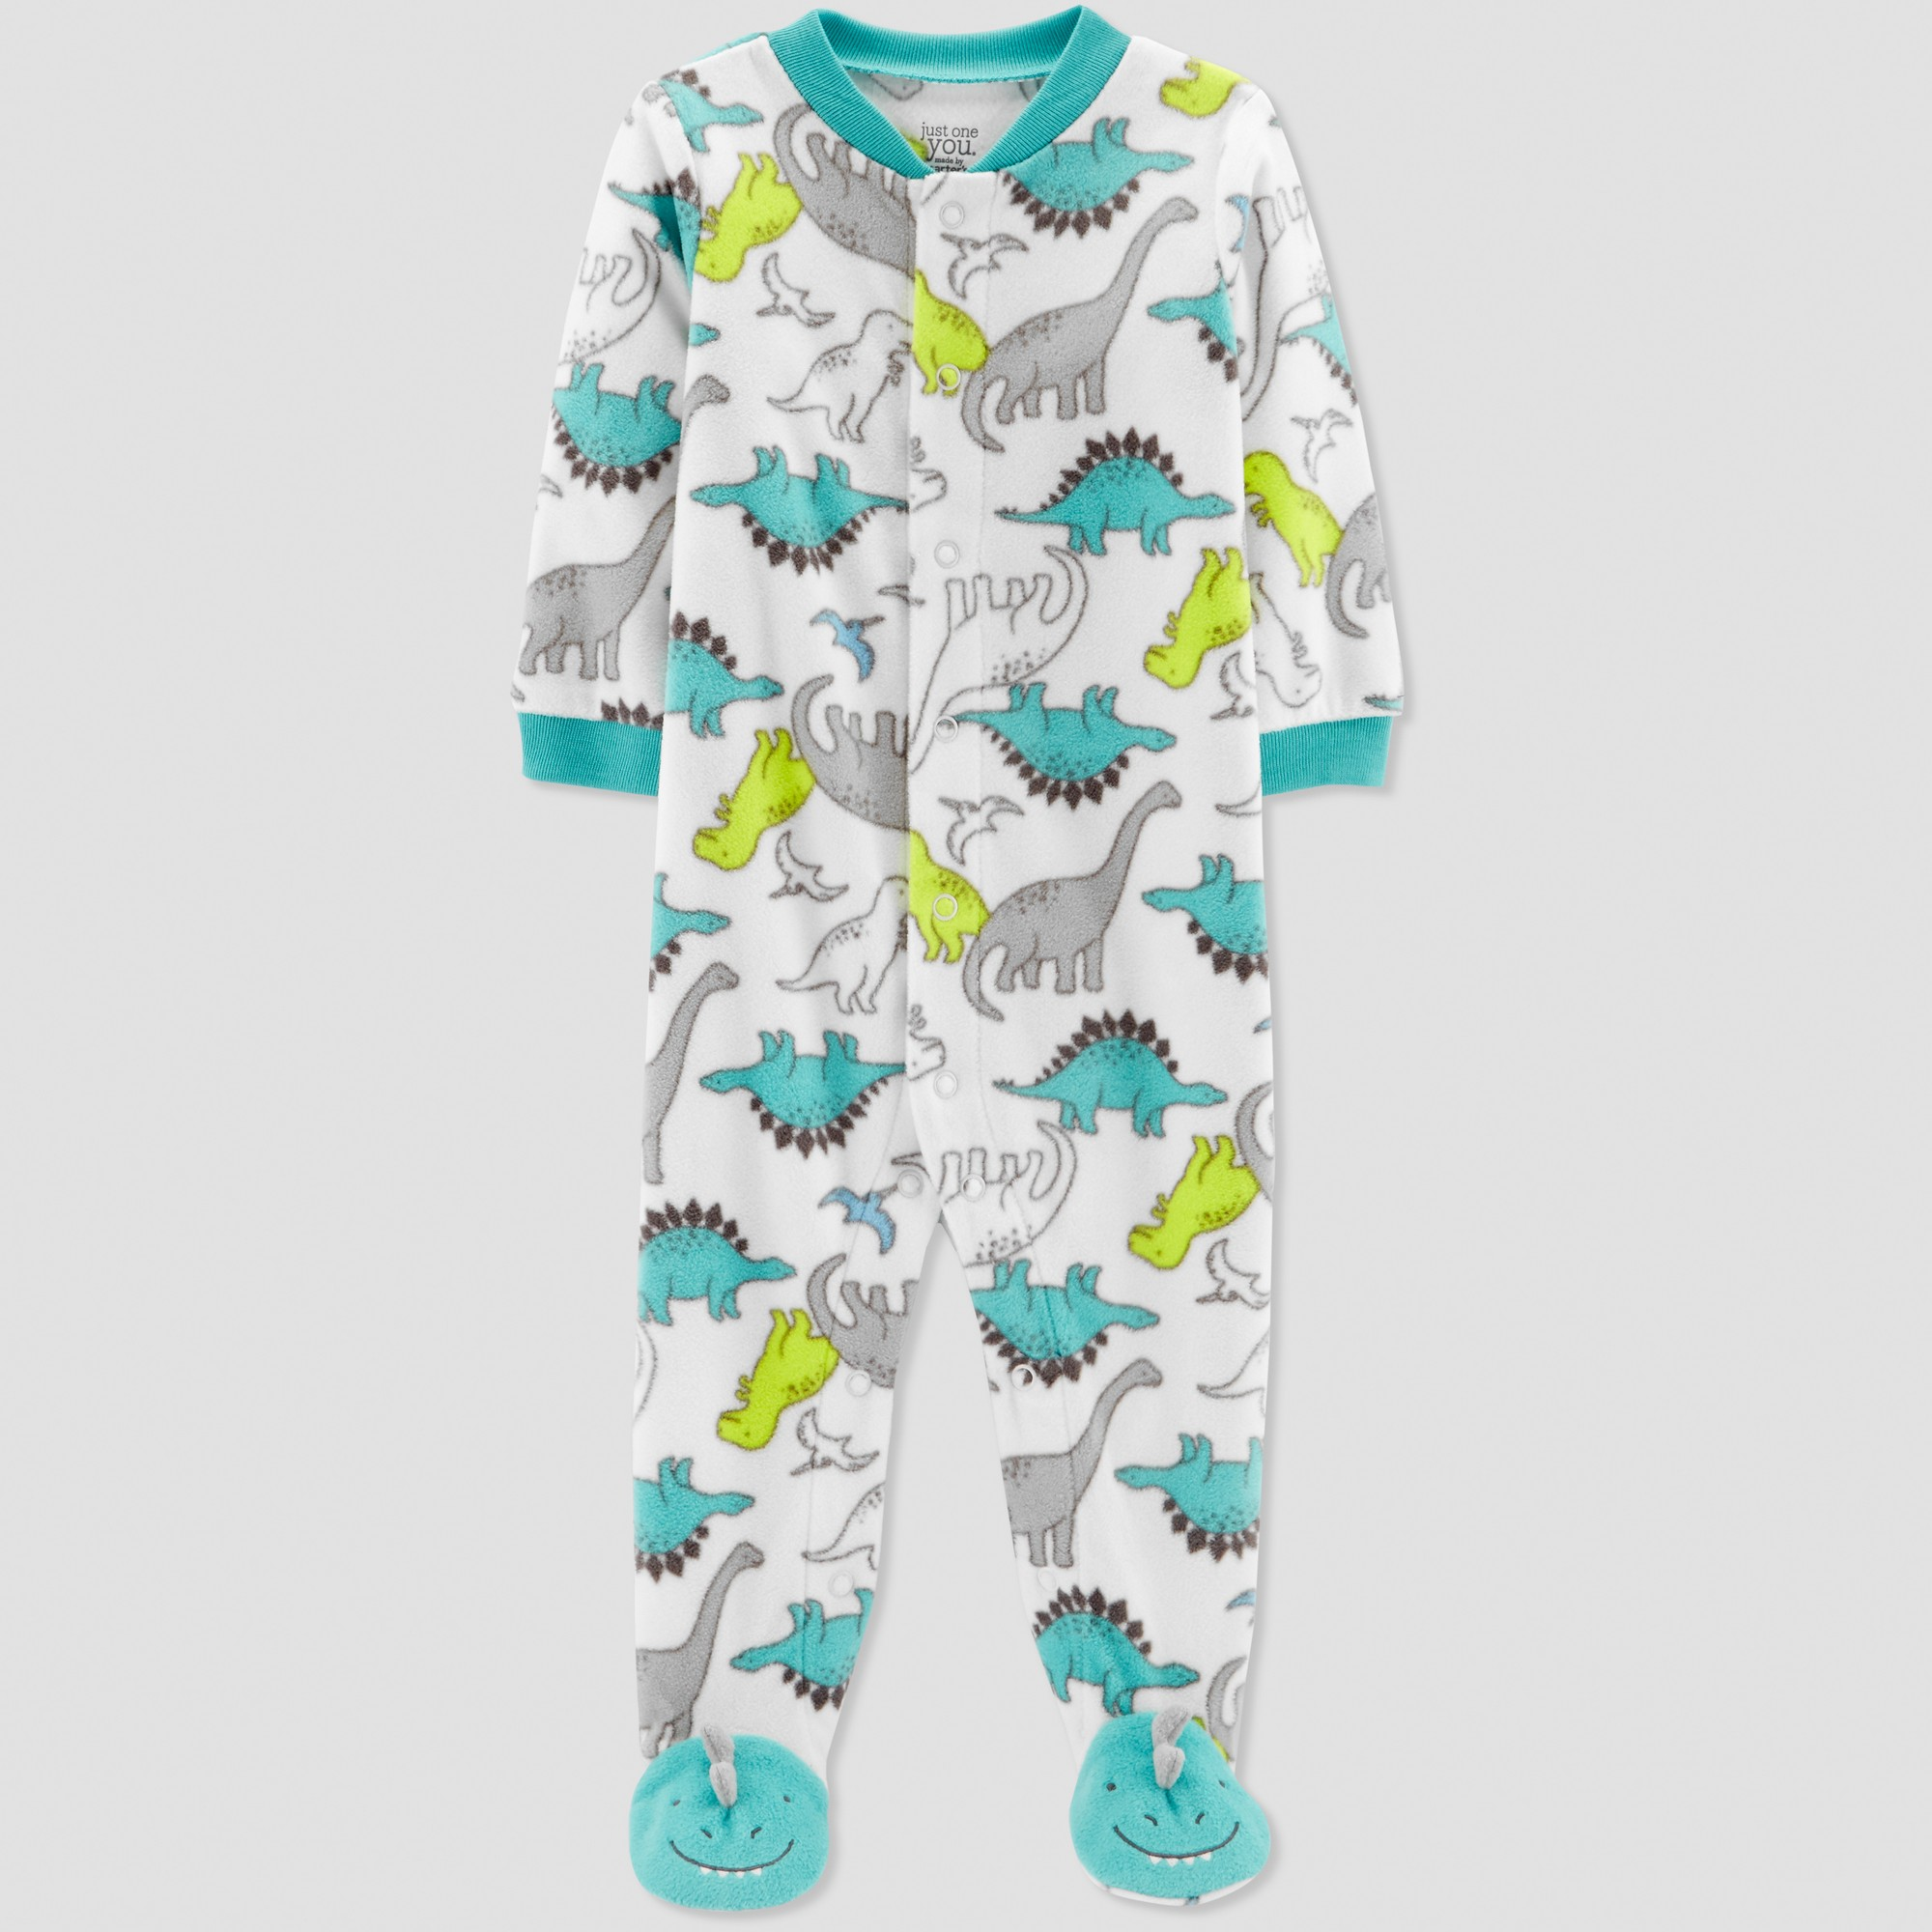 aee096eded51 Baby Boys  Dino Print Microfleece Sleep  N Play - Just One You made ...